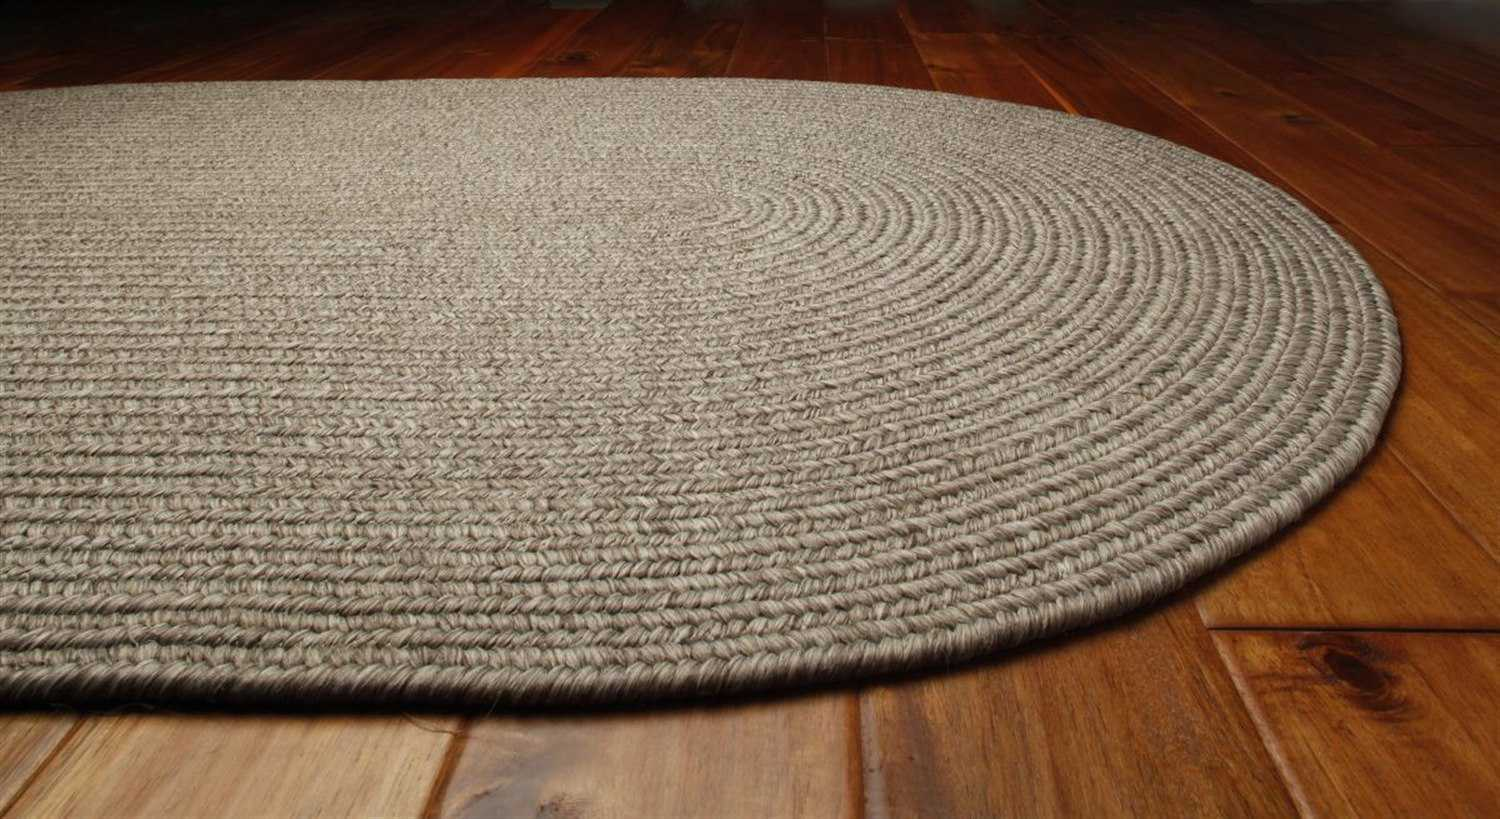 Homespice Decor Ultra Durable Braided Oval White Area Rug